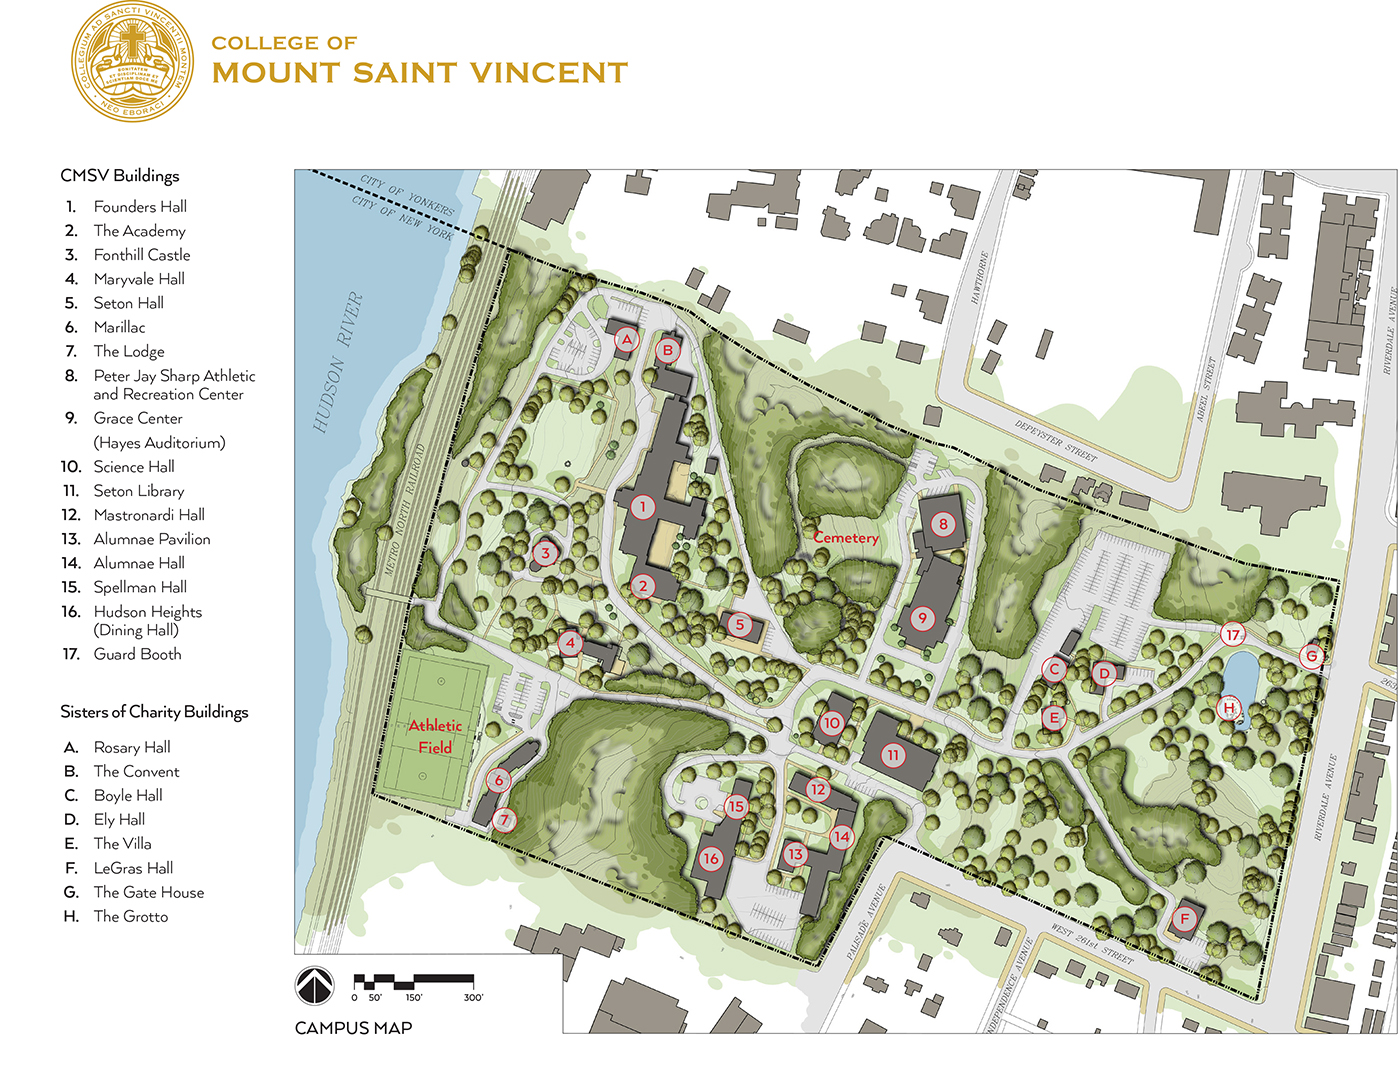 CampusMap2015Final - College of Mount Saint Vincent on